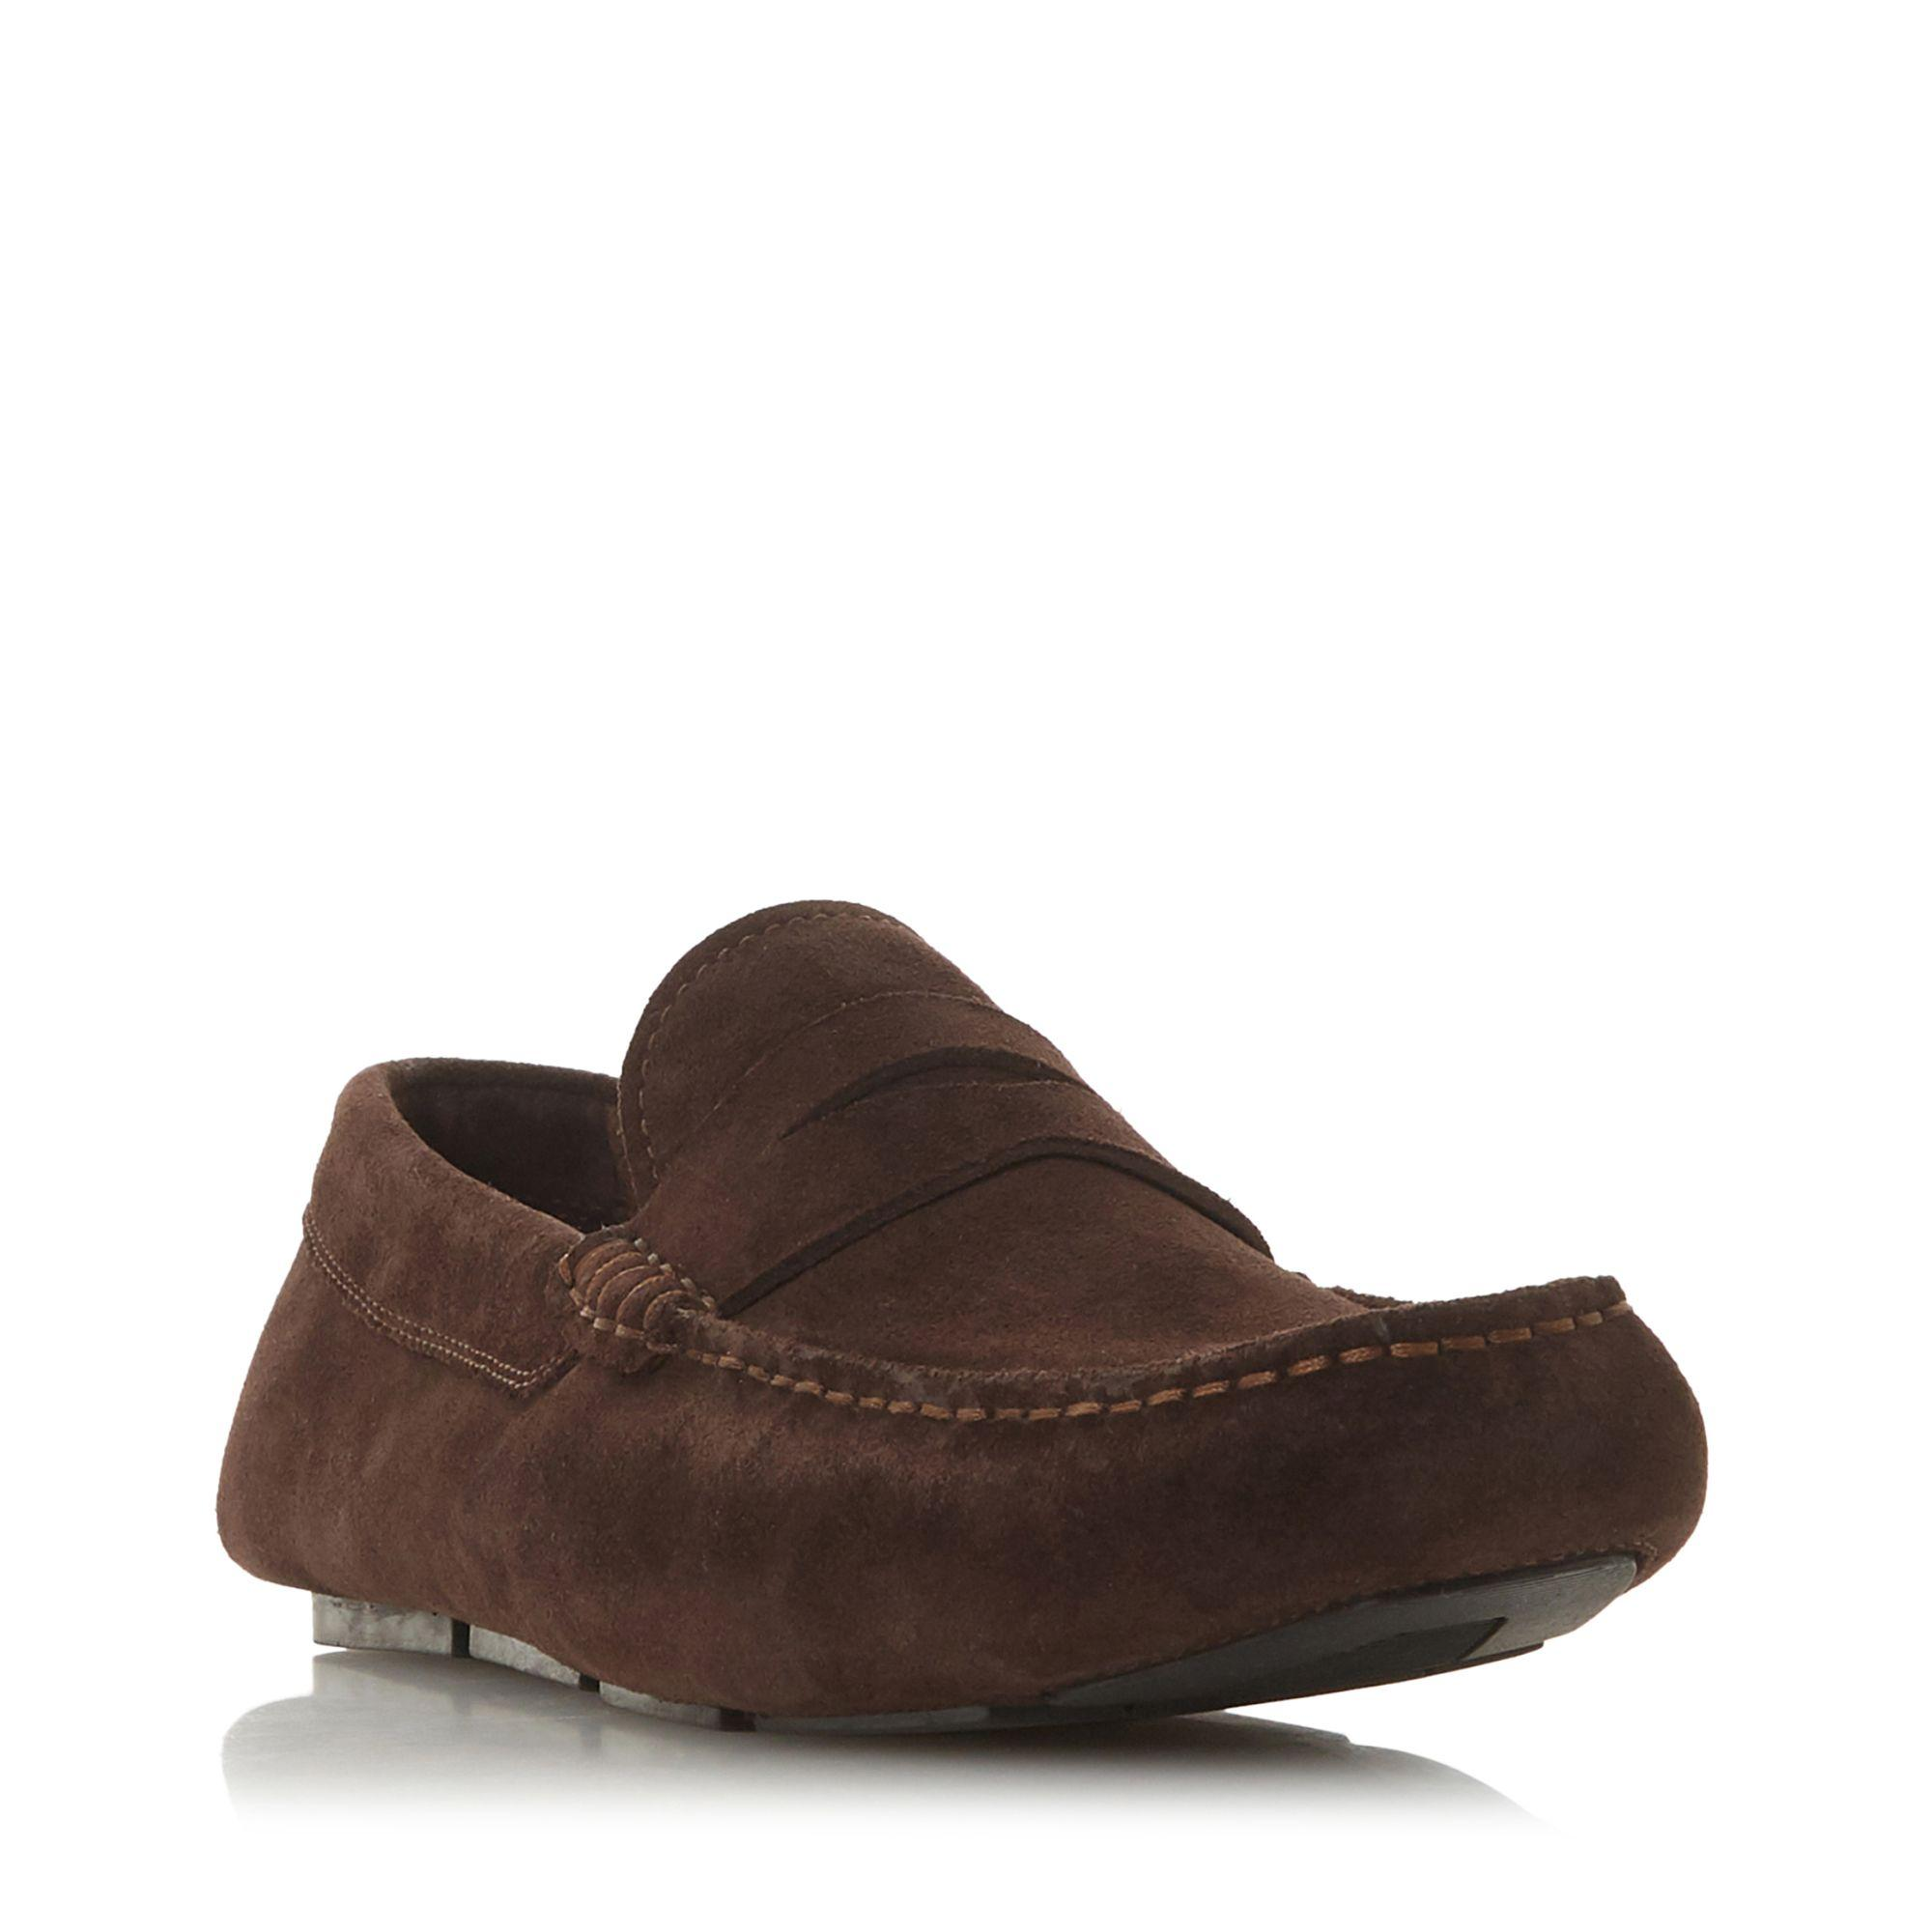 fb019b600 Dune Brown 'balance' Saddle Loafers Shoes in Brown for Men - Lyst